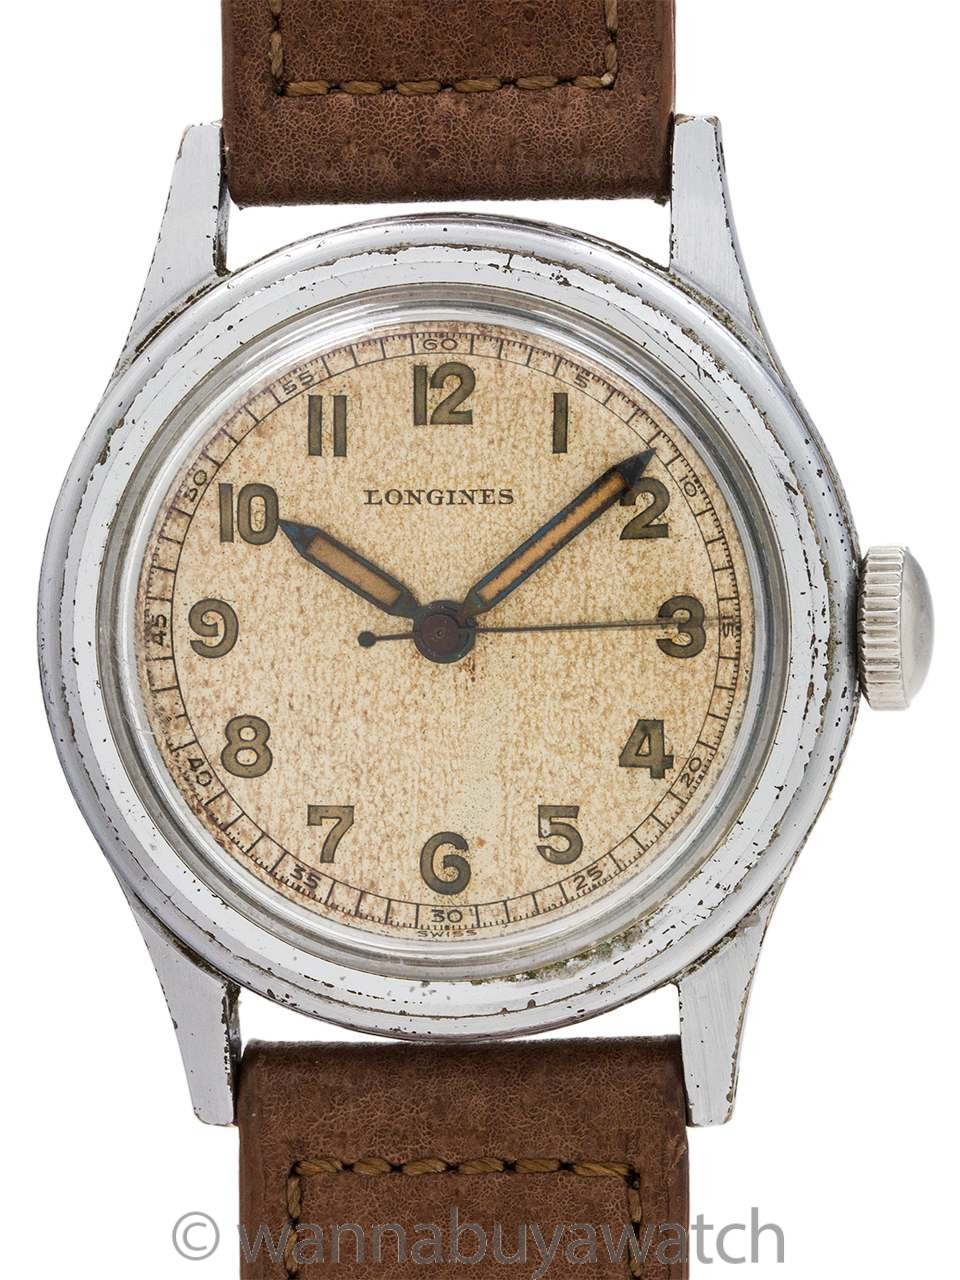 Longines Manual Wind USN Buships circa 1940's